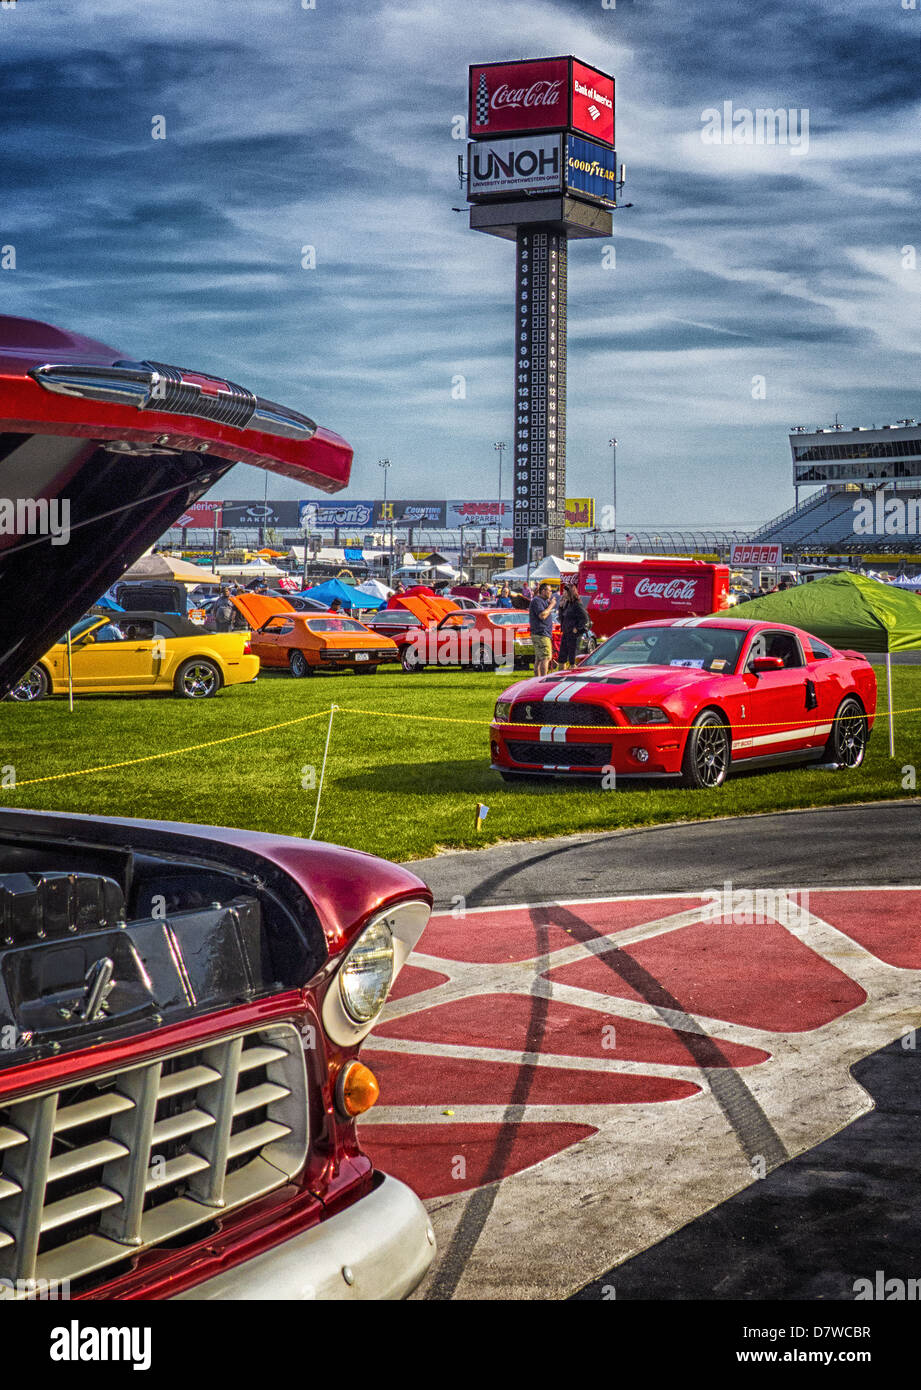 The semi annual car show at Lowes Speedway. The scoring tower and beautiful  Carolina sky can be seen in the background. - Stock Image